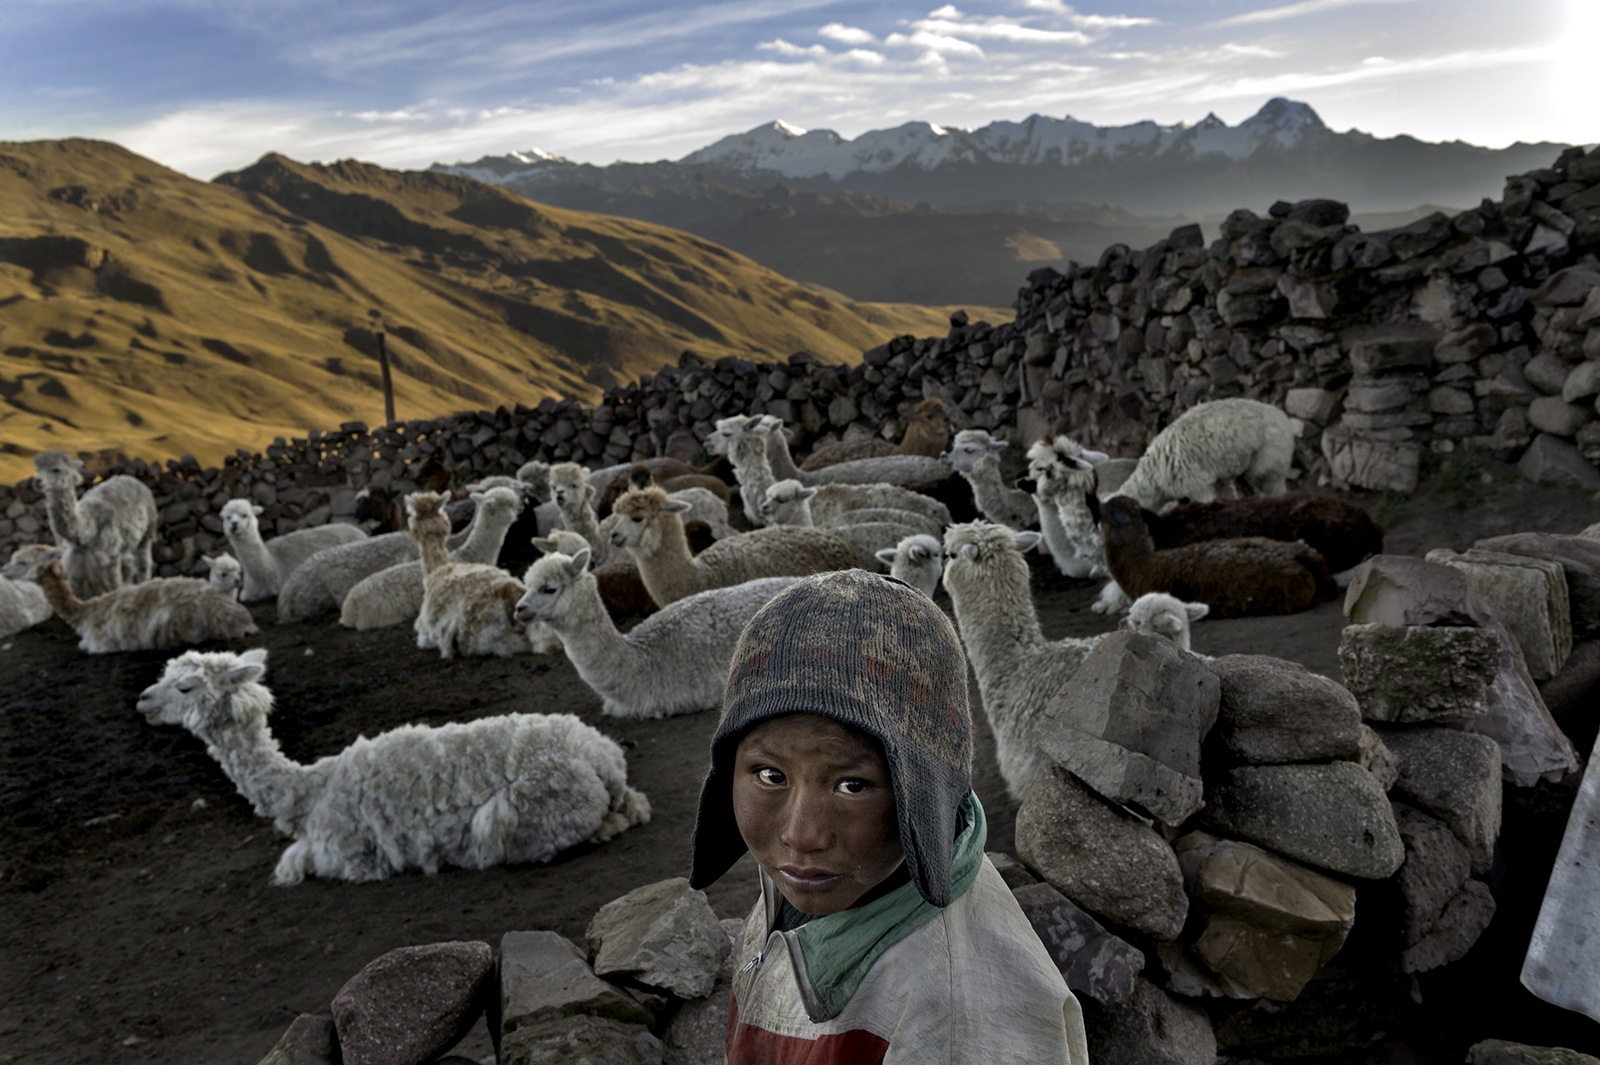 Following the death of his father, Alvaro Kalancha Quispe, 9, helps his family survive by herding. He opens the gate to the stone pen that holds the family's alpacas and llamas each morning so they can graze throughout the hillsides during the day. He then heads off to school, but must round them up again in the evening in the Akamani mountain range of Bolivia in an area called Caluyo, about an hour from the city of Qutapampa. In this part of the world, the highlands of Bolivia, approximately 13,000 feet above sea level, residents live in homes with no insulation, no electricity, and no beds. Their water comes from streams that run off the snow-covered mountains. Their livelihood lies with their animals, for each animal produces about three pounds of fur each year, and each pound of fur is sold for 18 bolivianos, which amounts to about $2.50 U.S. All in all, this family may earn about $200 of income each year from the herd they watch over. ©  Renée C. Byer